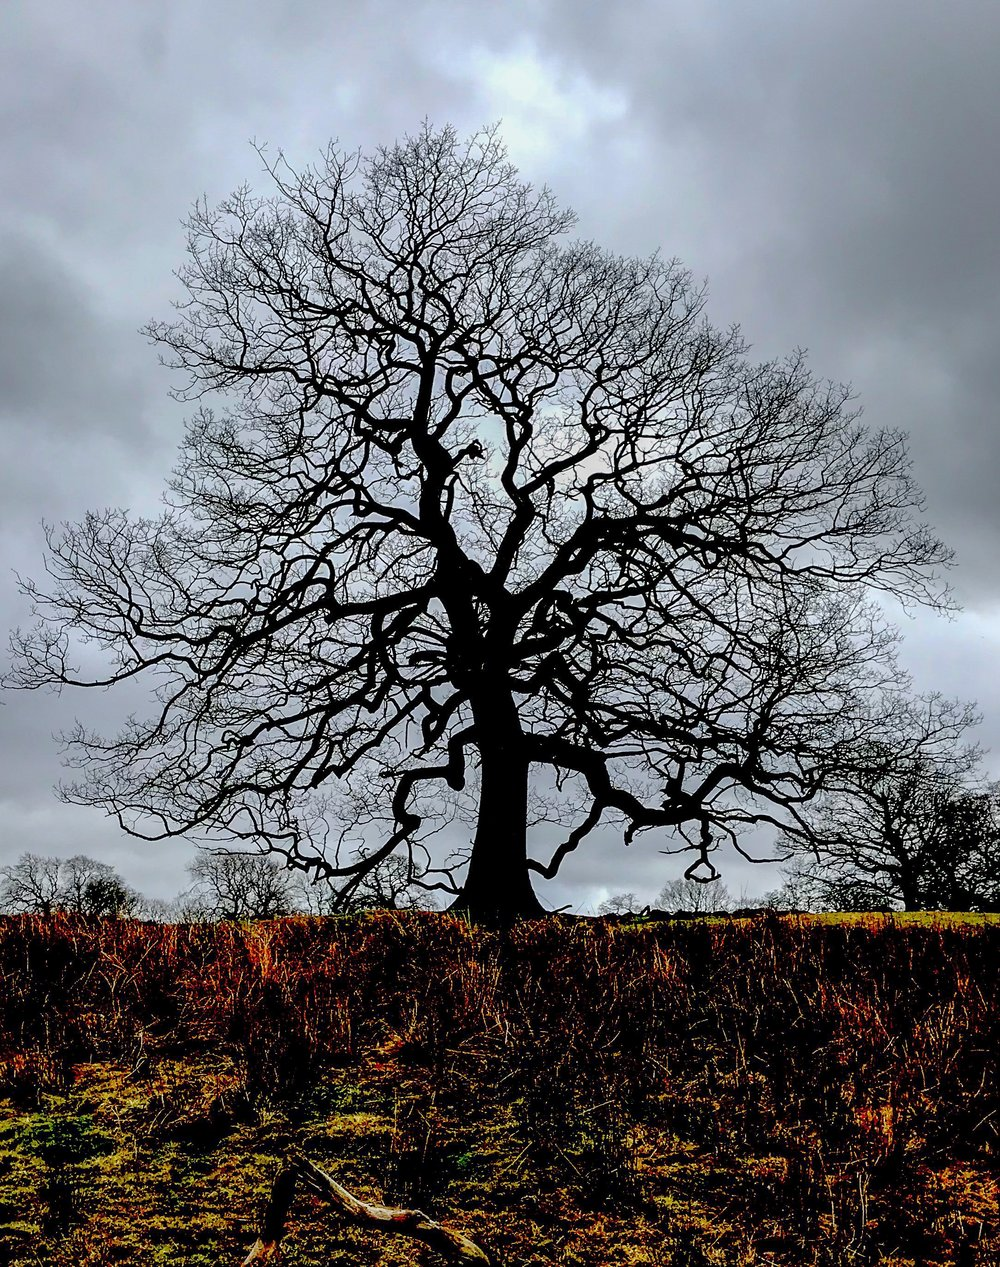 Winter Tree at Fewston Reservoir